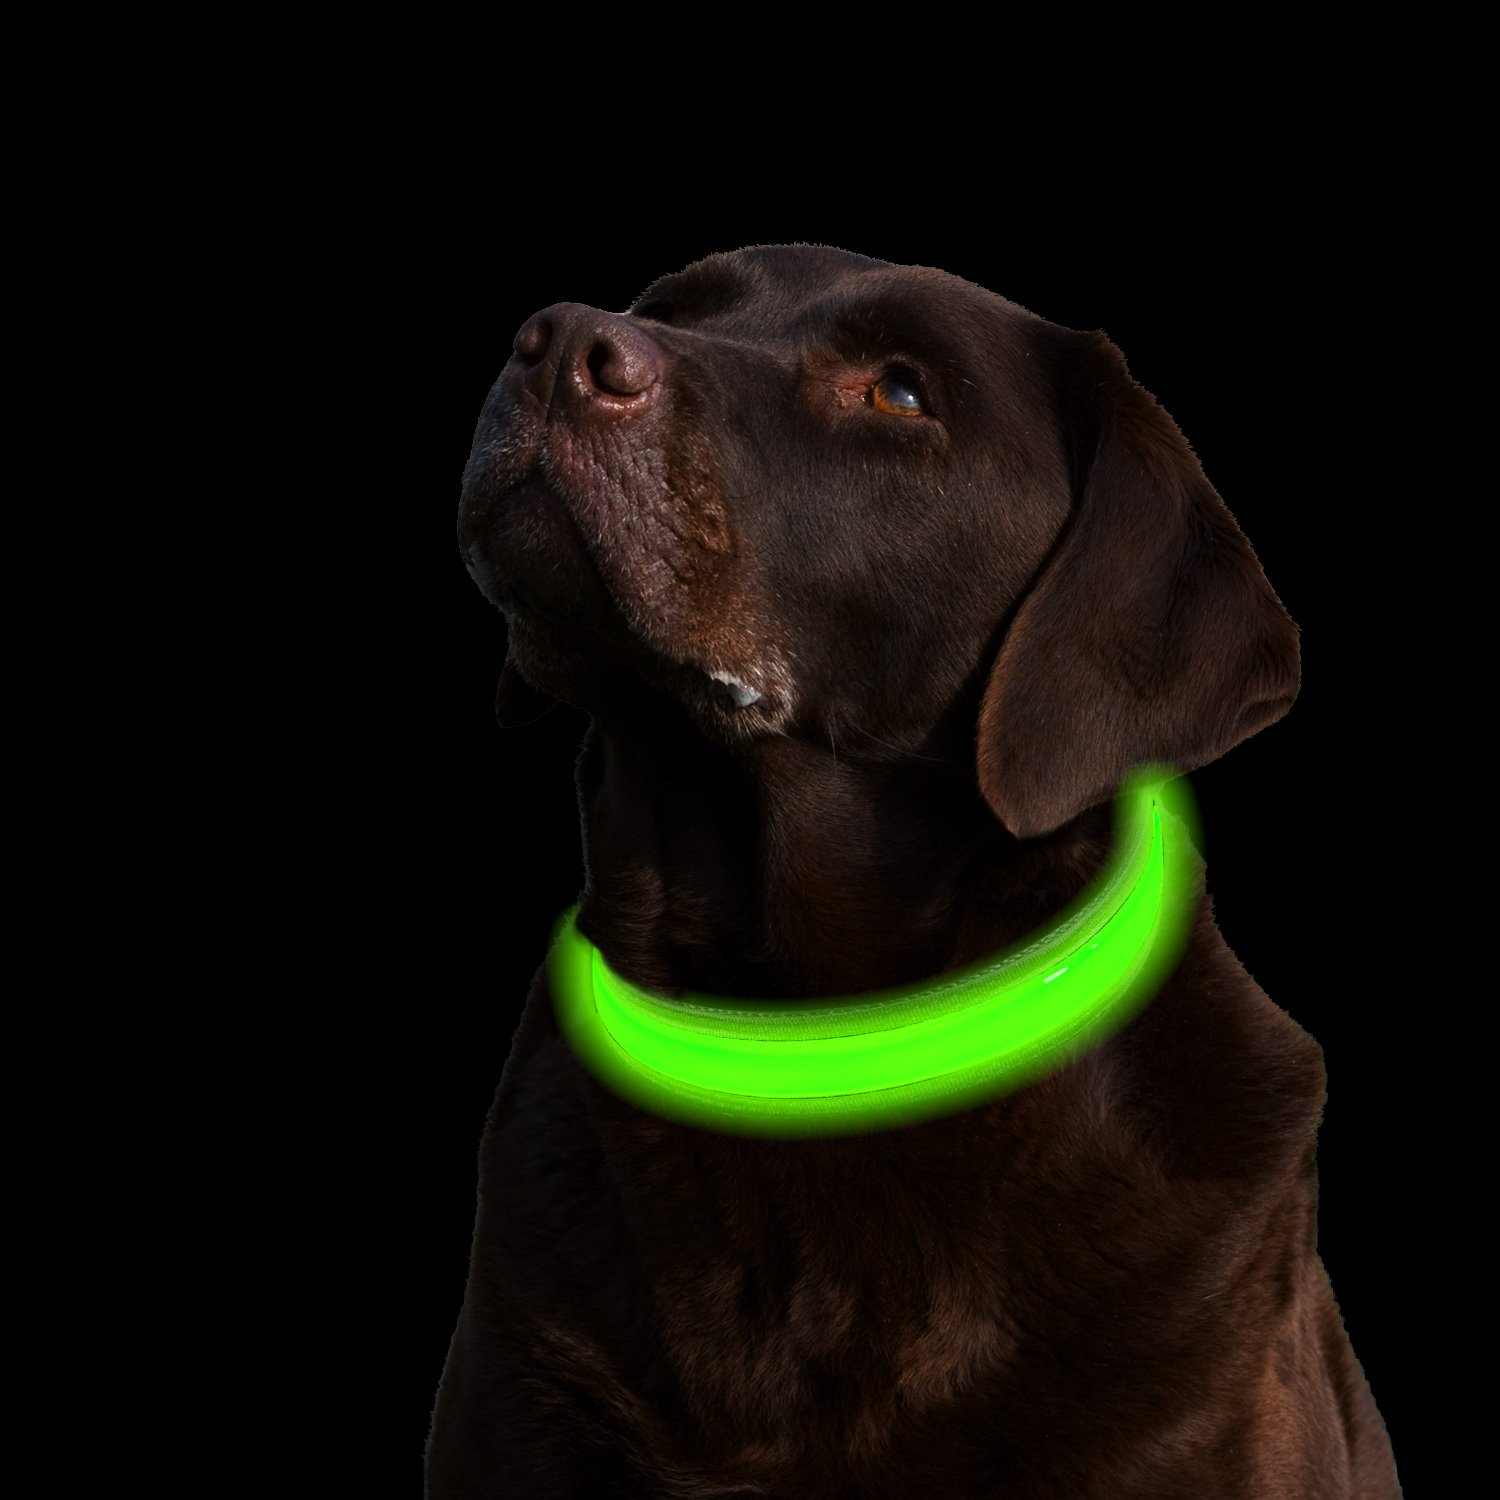 loop from tube rechargeable light night neck product com dog collar emours band led dark safety usb grow the waterproof dhgate up in fashing